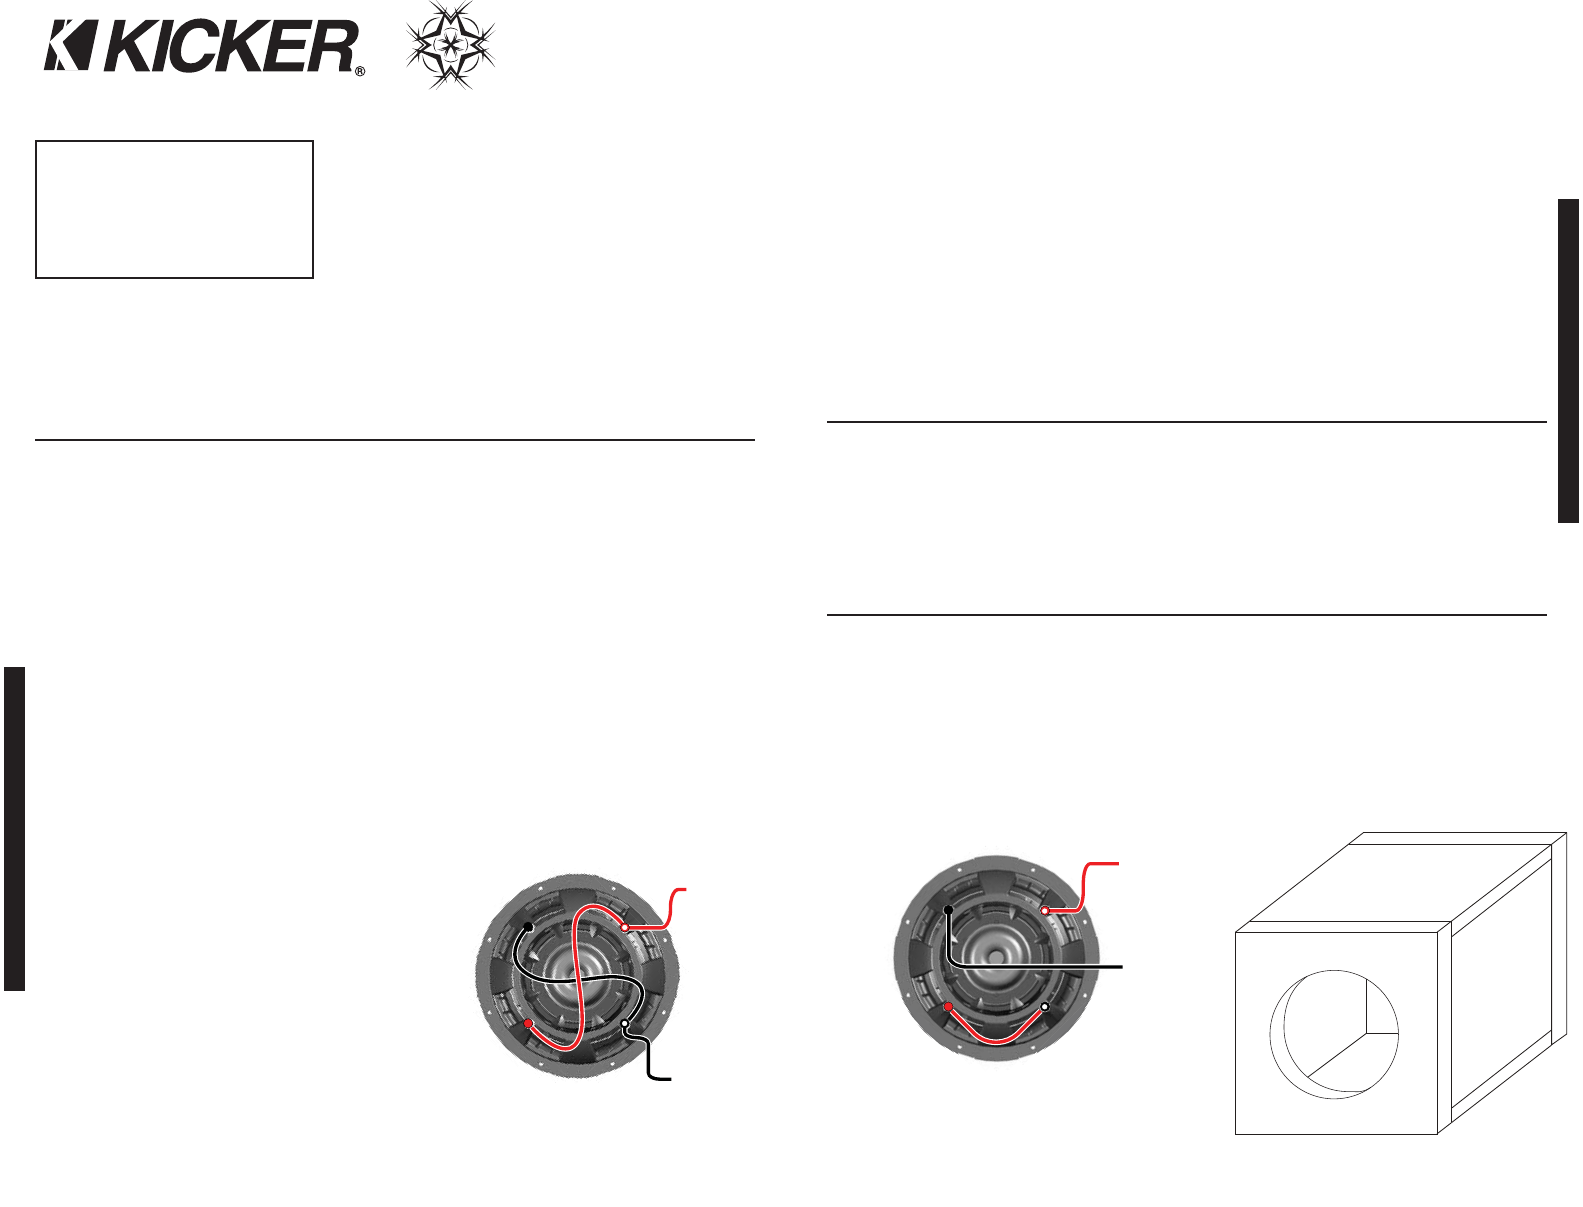 Kicker Cvr 10 Wiring Diagram Also Wiring Diagram For 2 15 Kicker Cvr